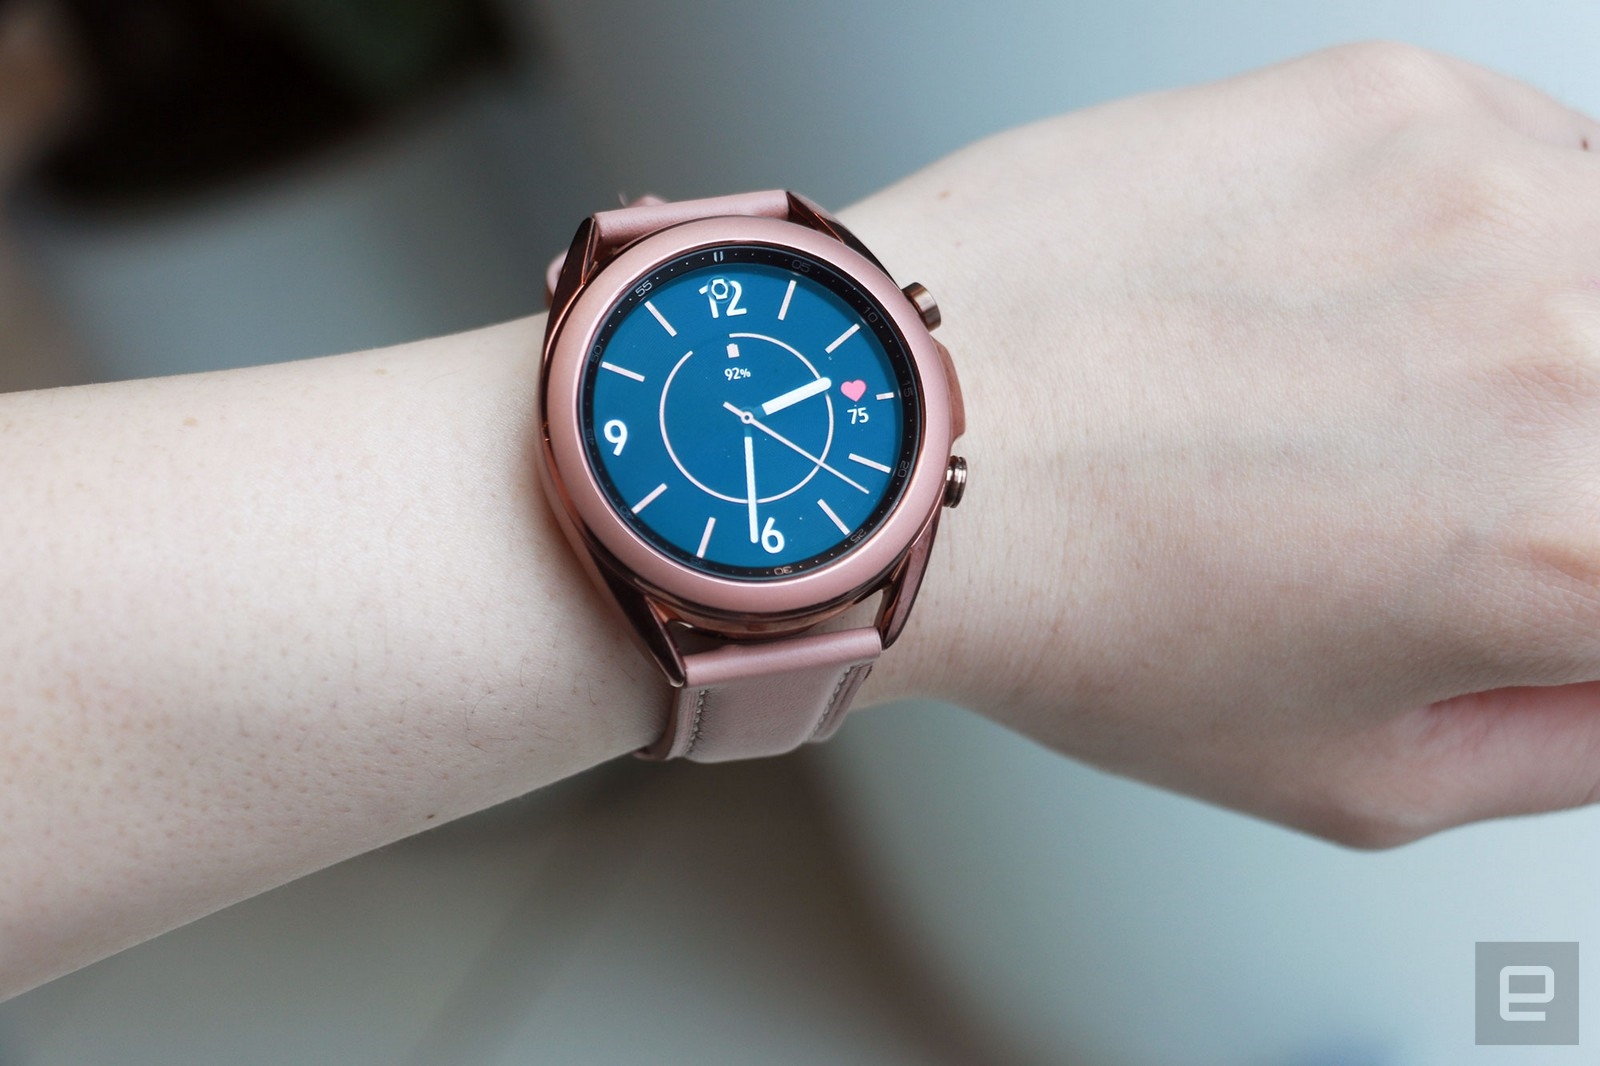 Samsung's Galaxy Watch 3 gets its first big discount on Amazon | DeviceDaily.com